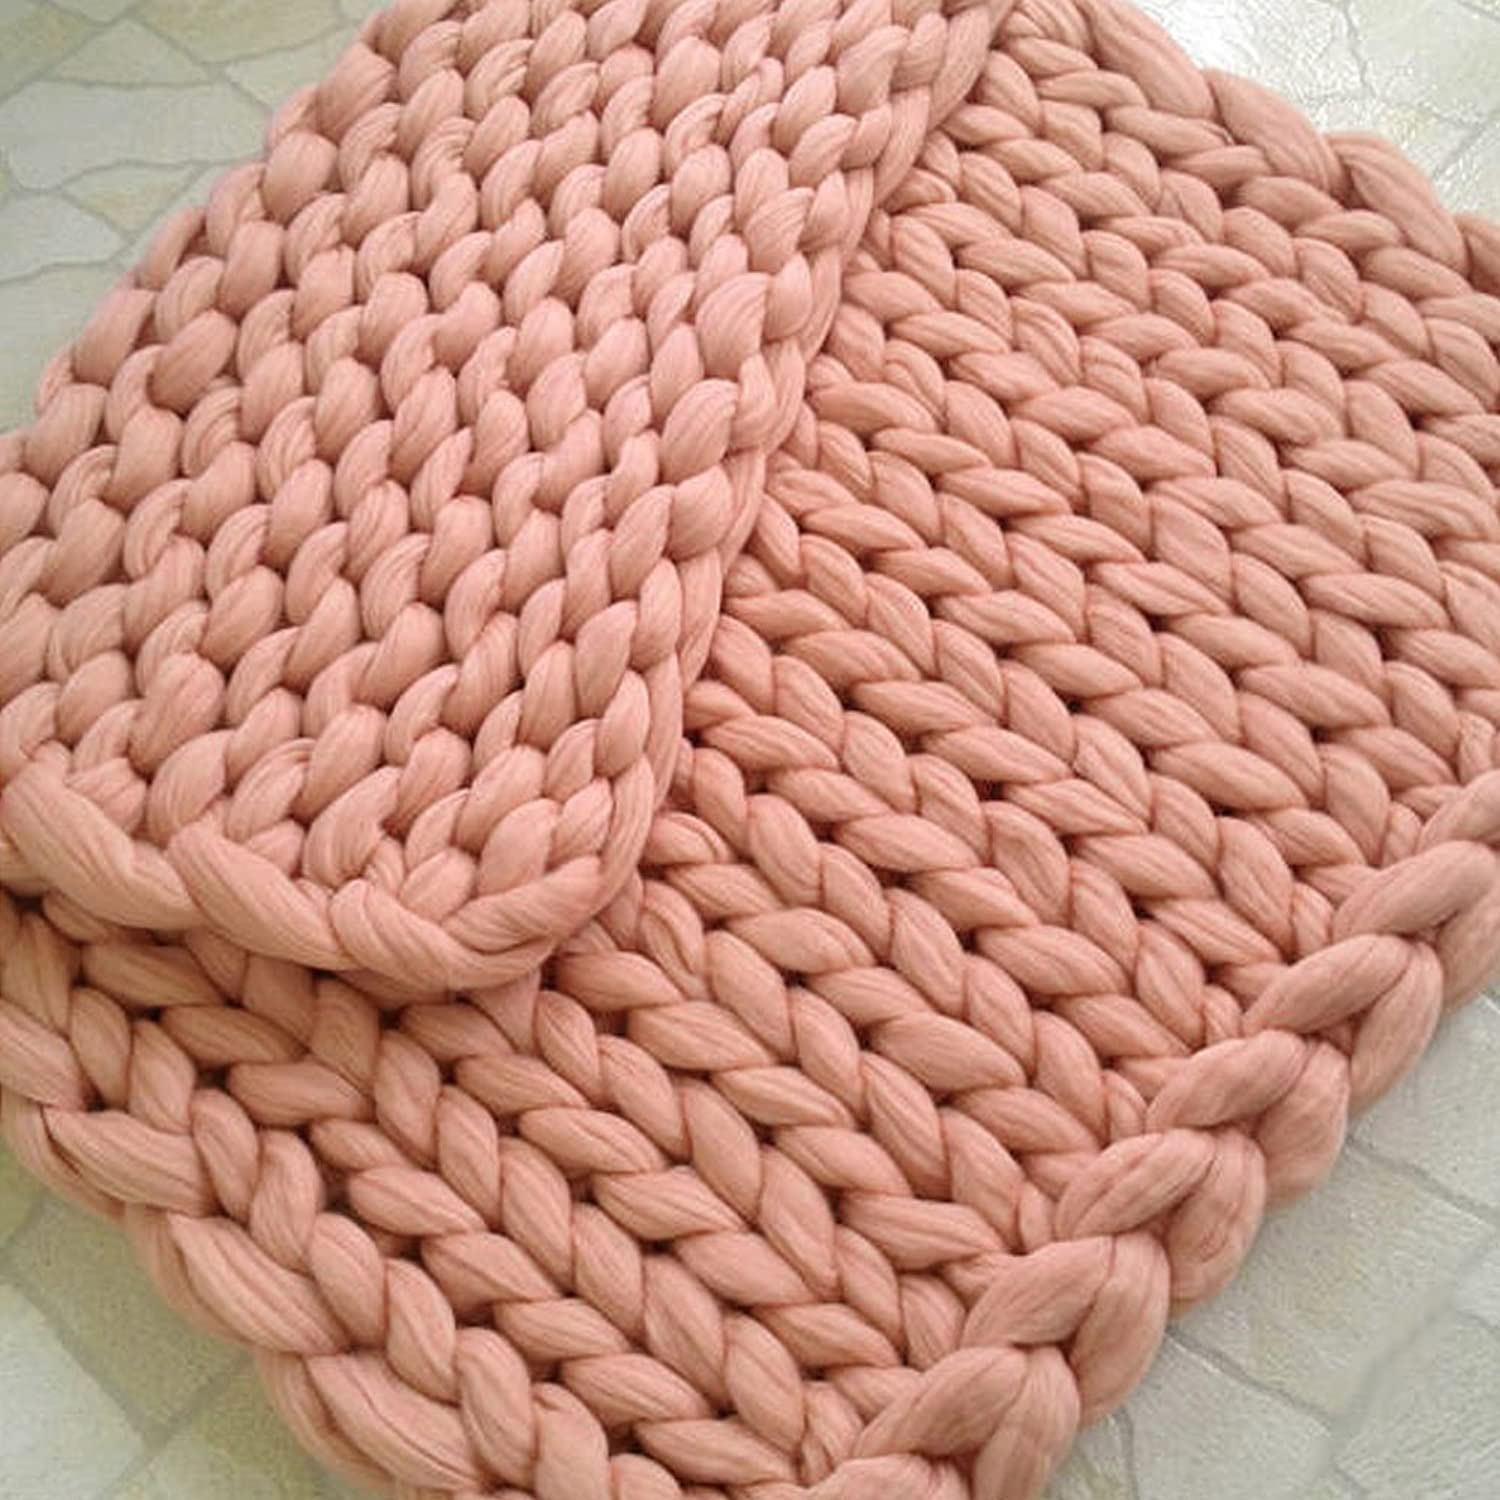 Premium Wool Blanket Super Chunky Knit Blanket Thick Yarn Blanket Giant Throw Arm Knitting Pet Bed Mat Baby Blanket Home Decor Christmas Gift 39 x79